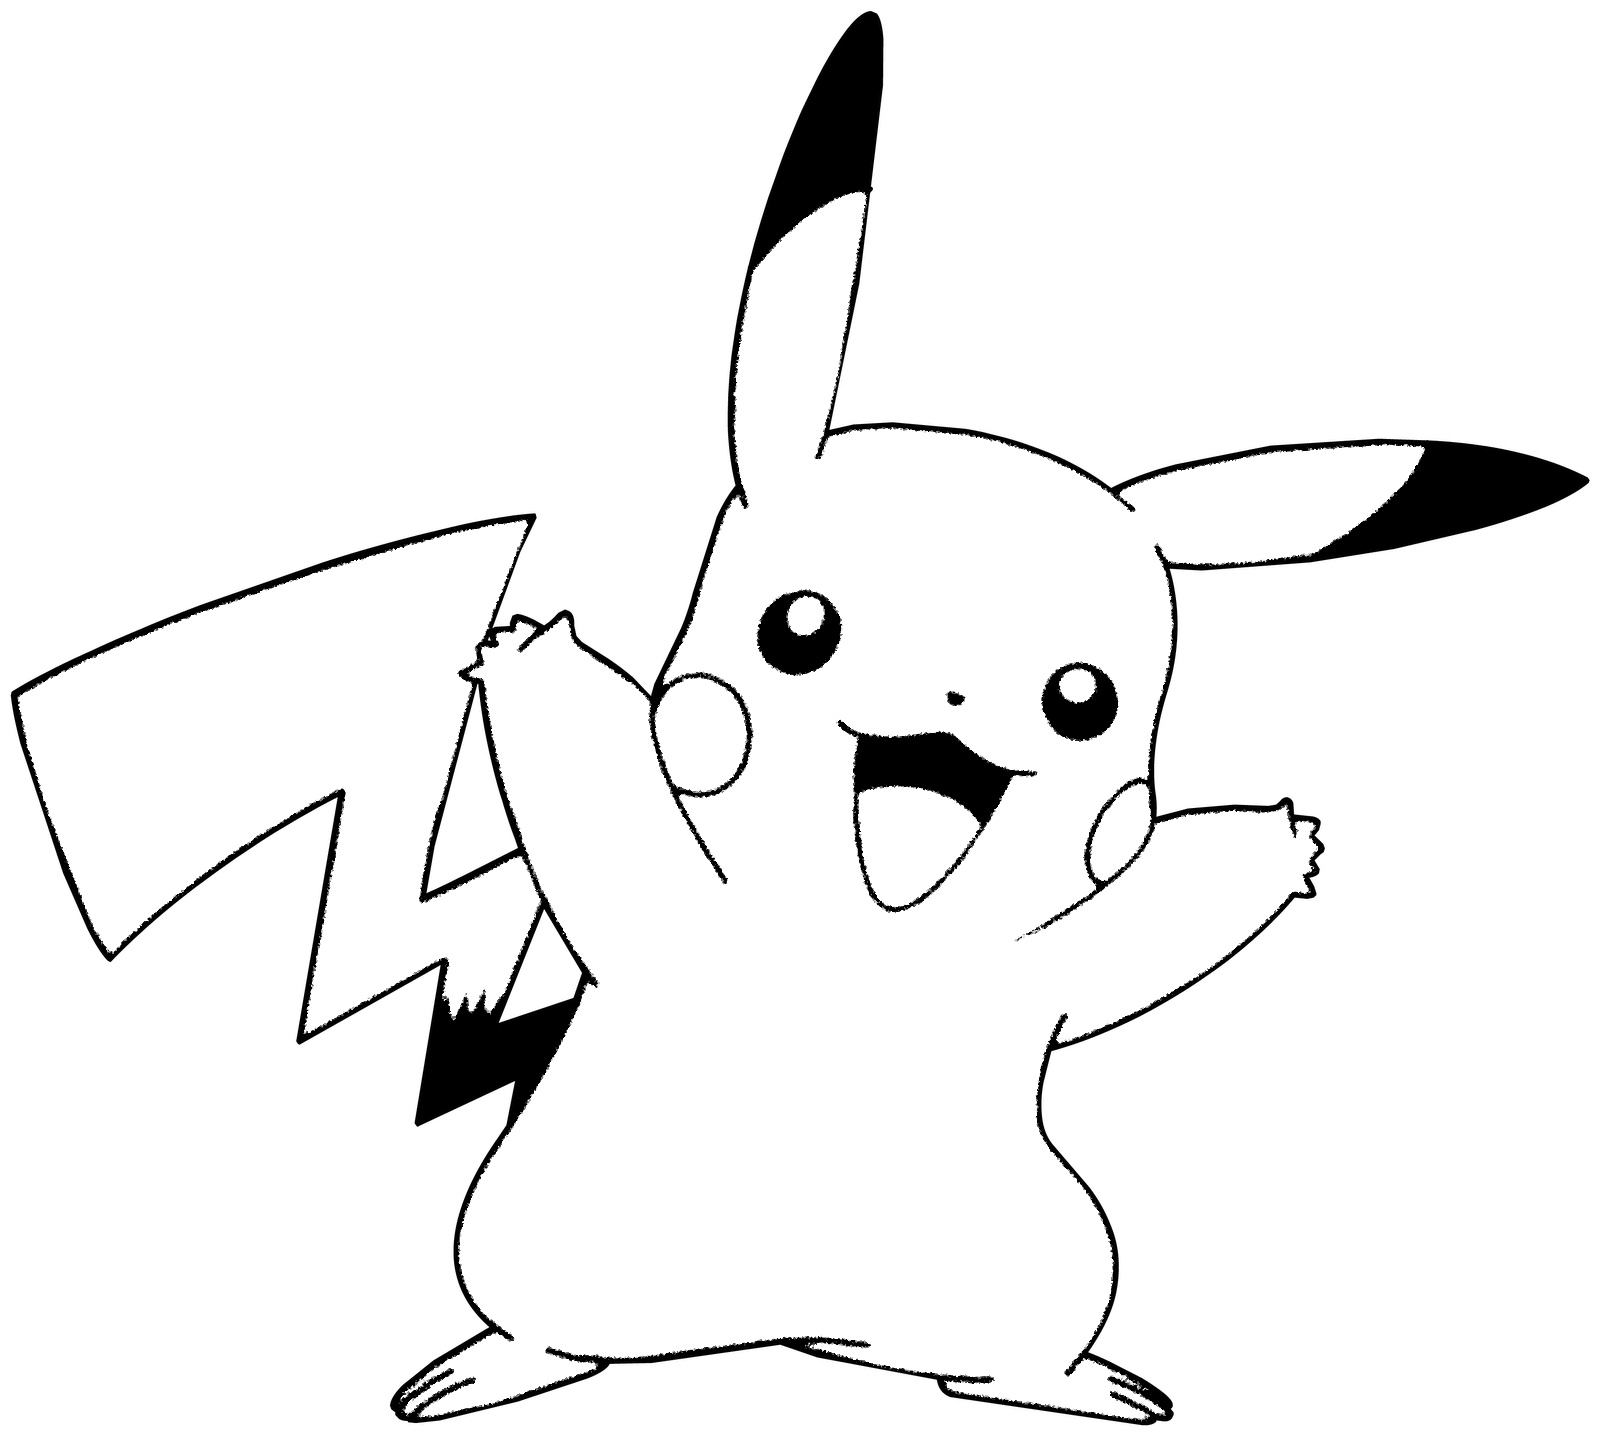 Picachu coloring pages